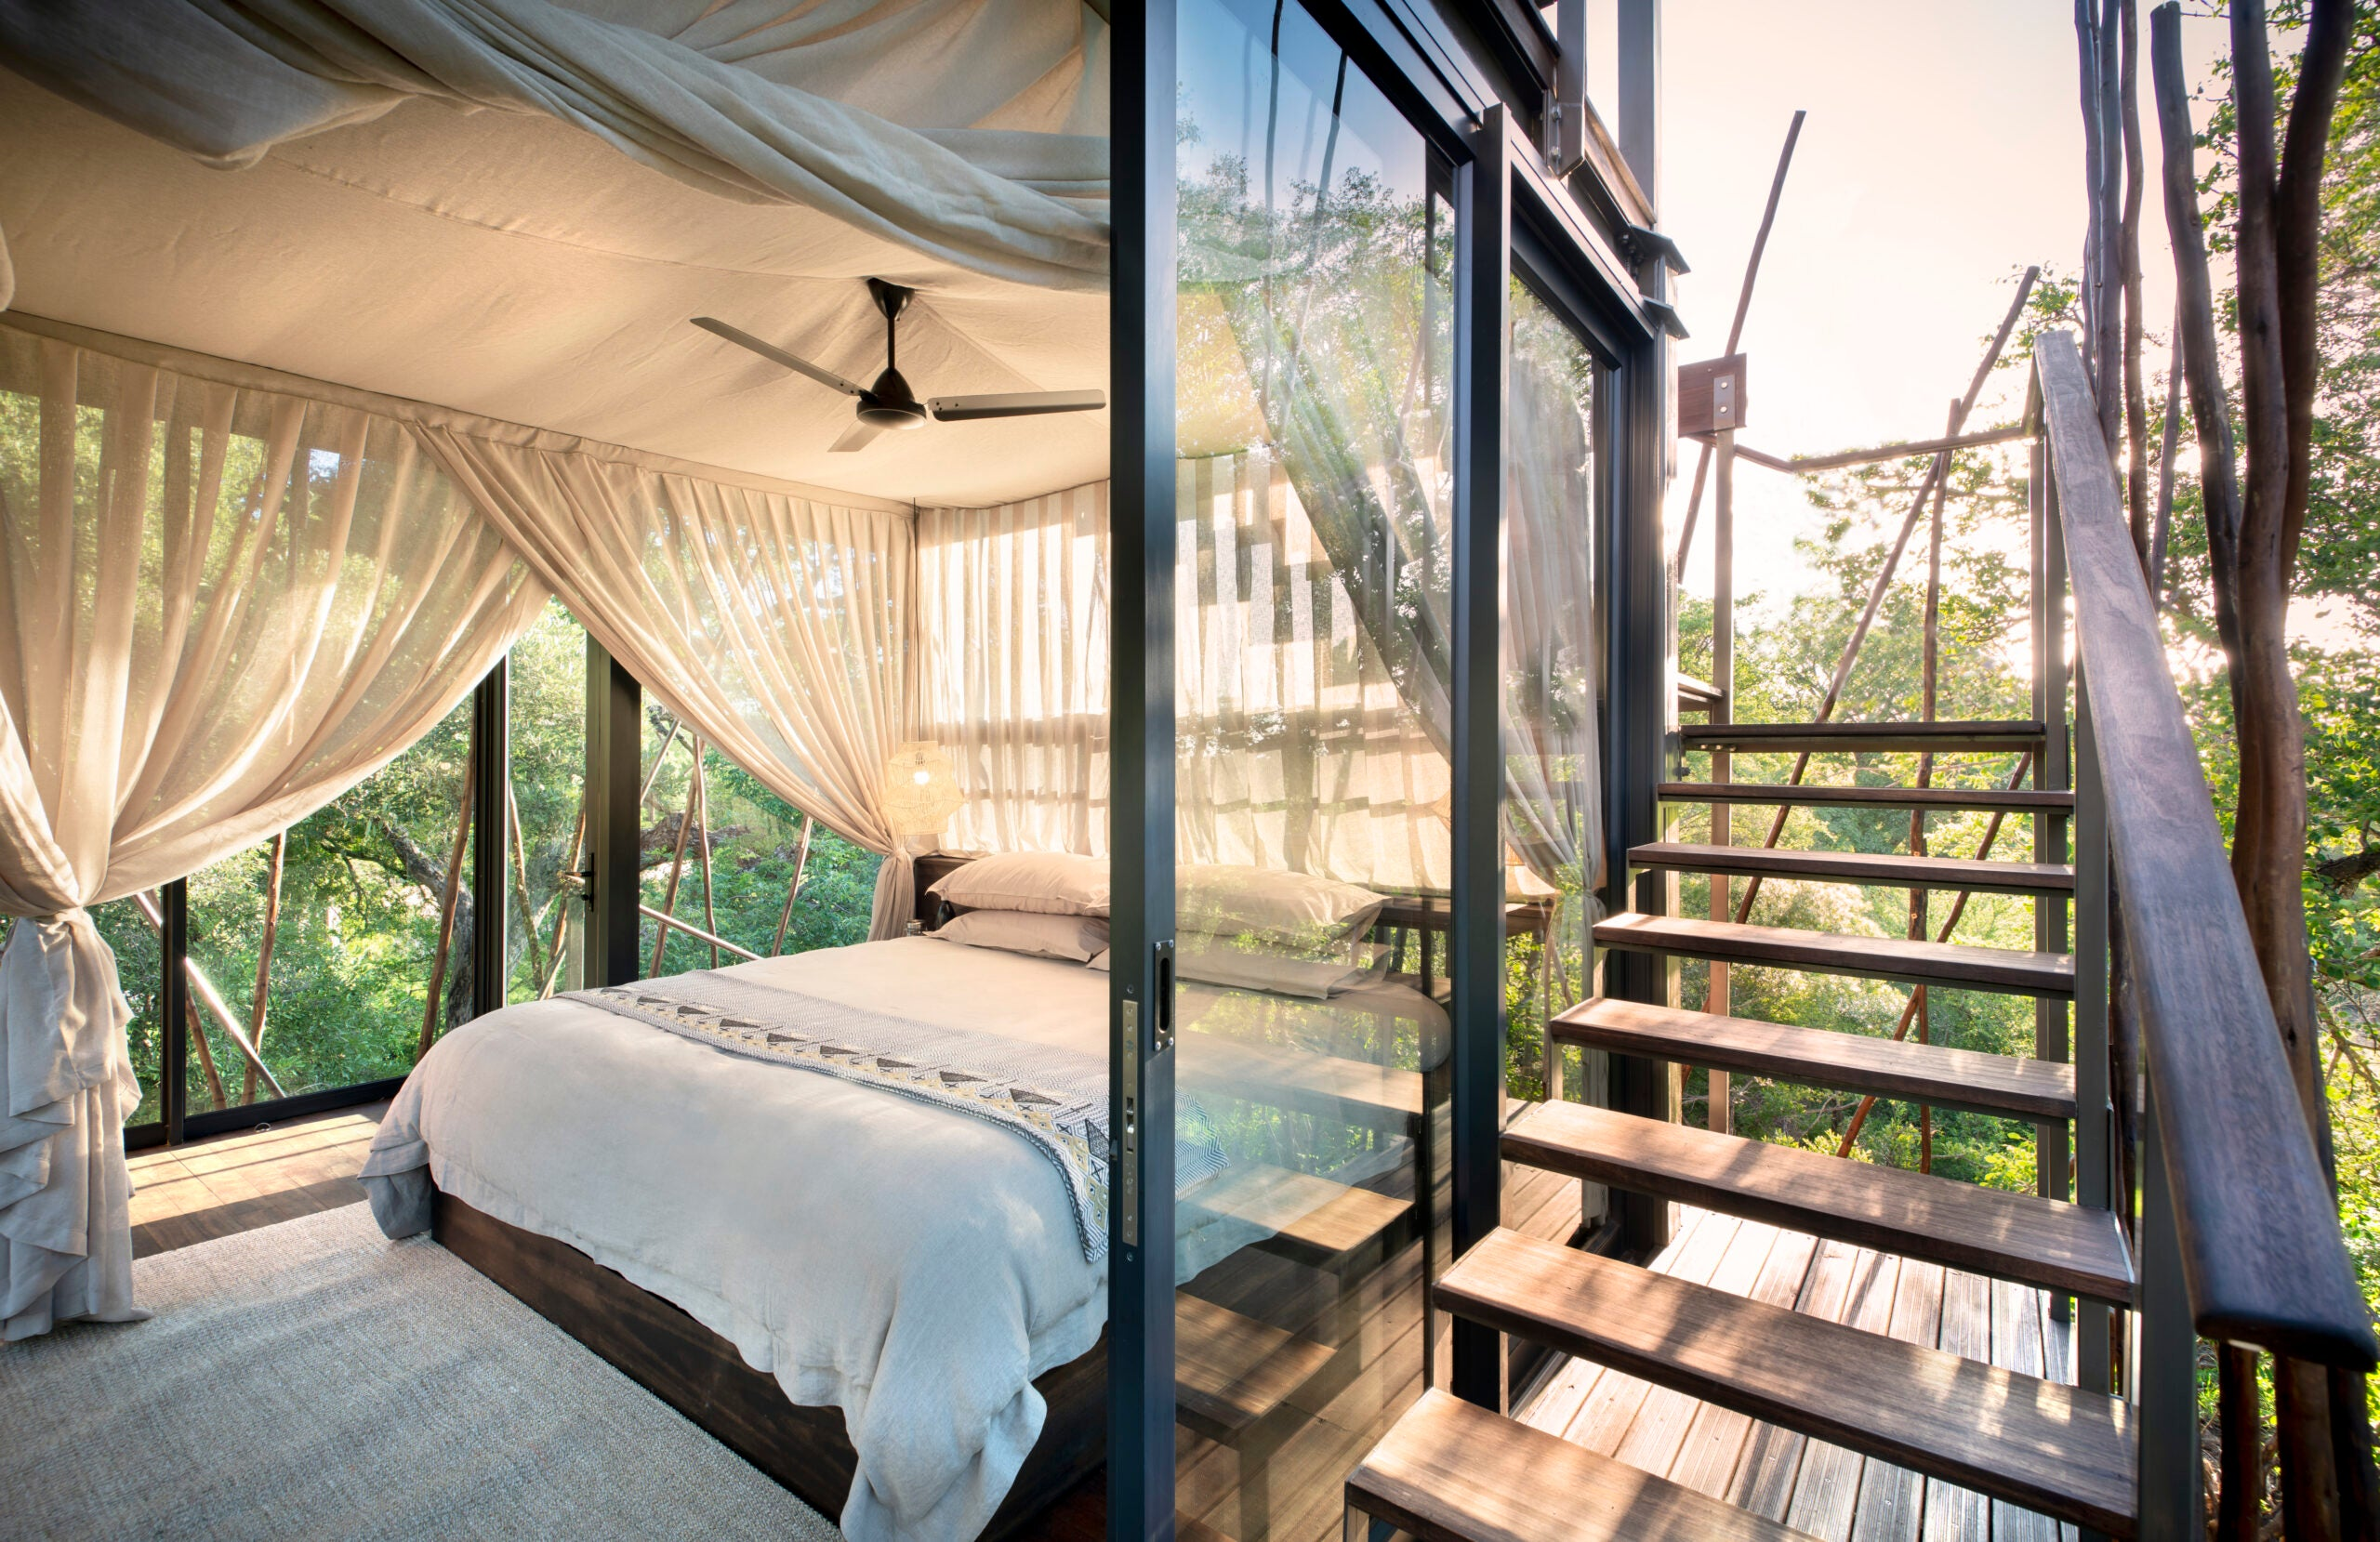 &Beyond Ngala Treehouse opening bedroom viewm